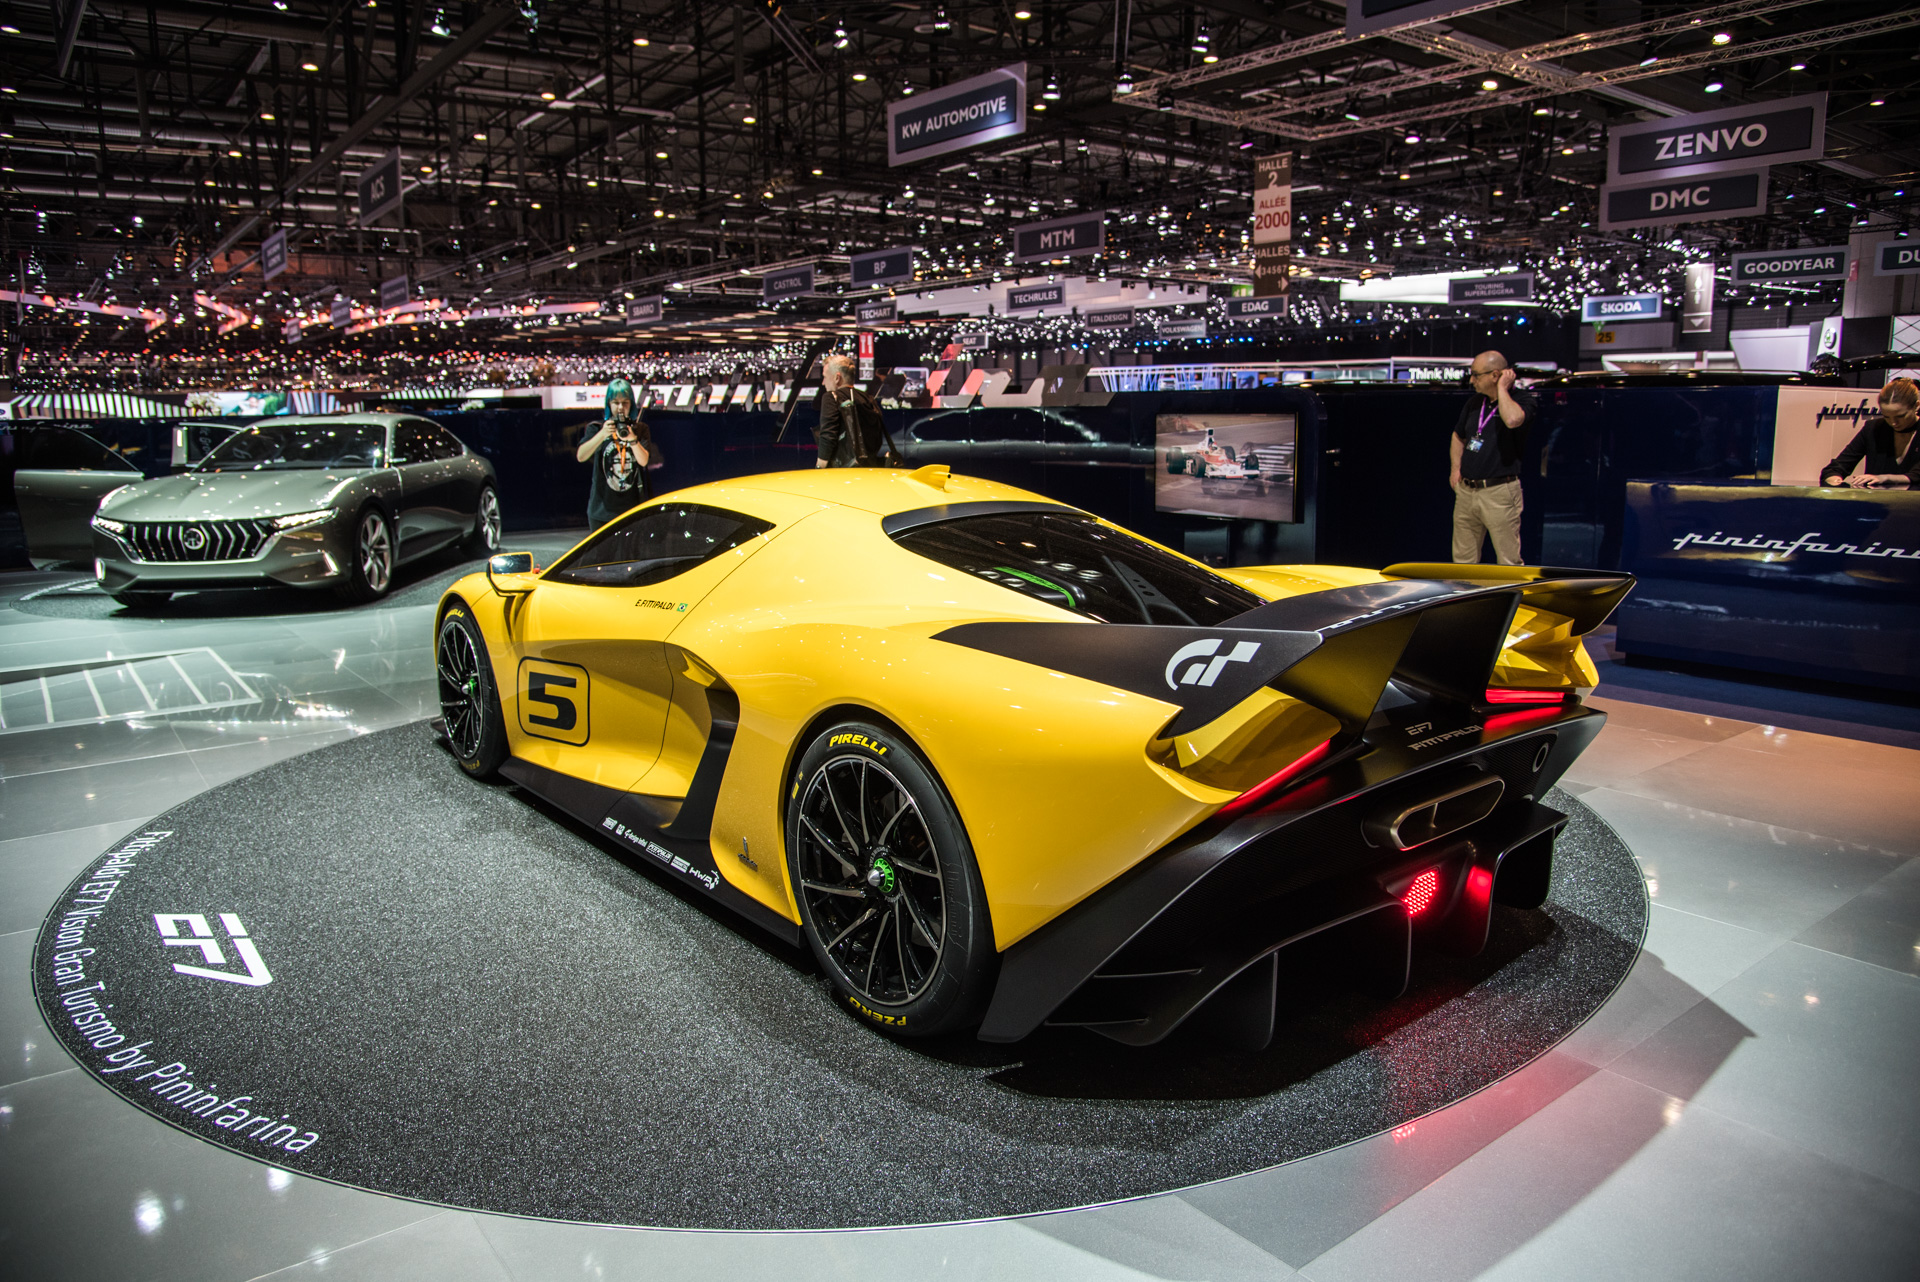 geneva-international-motor-show-igor-sinitsin-124